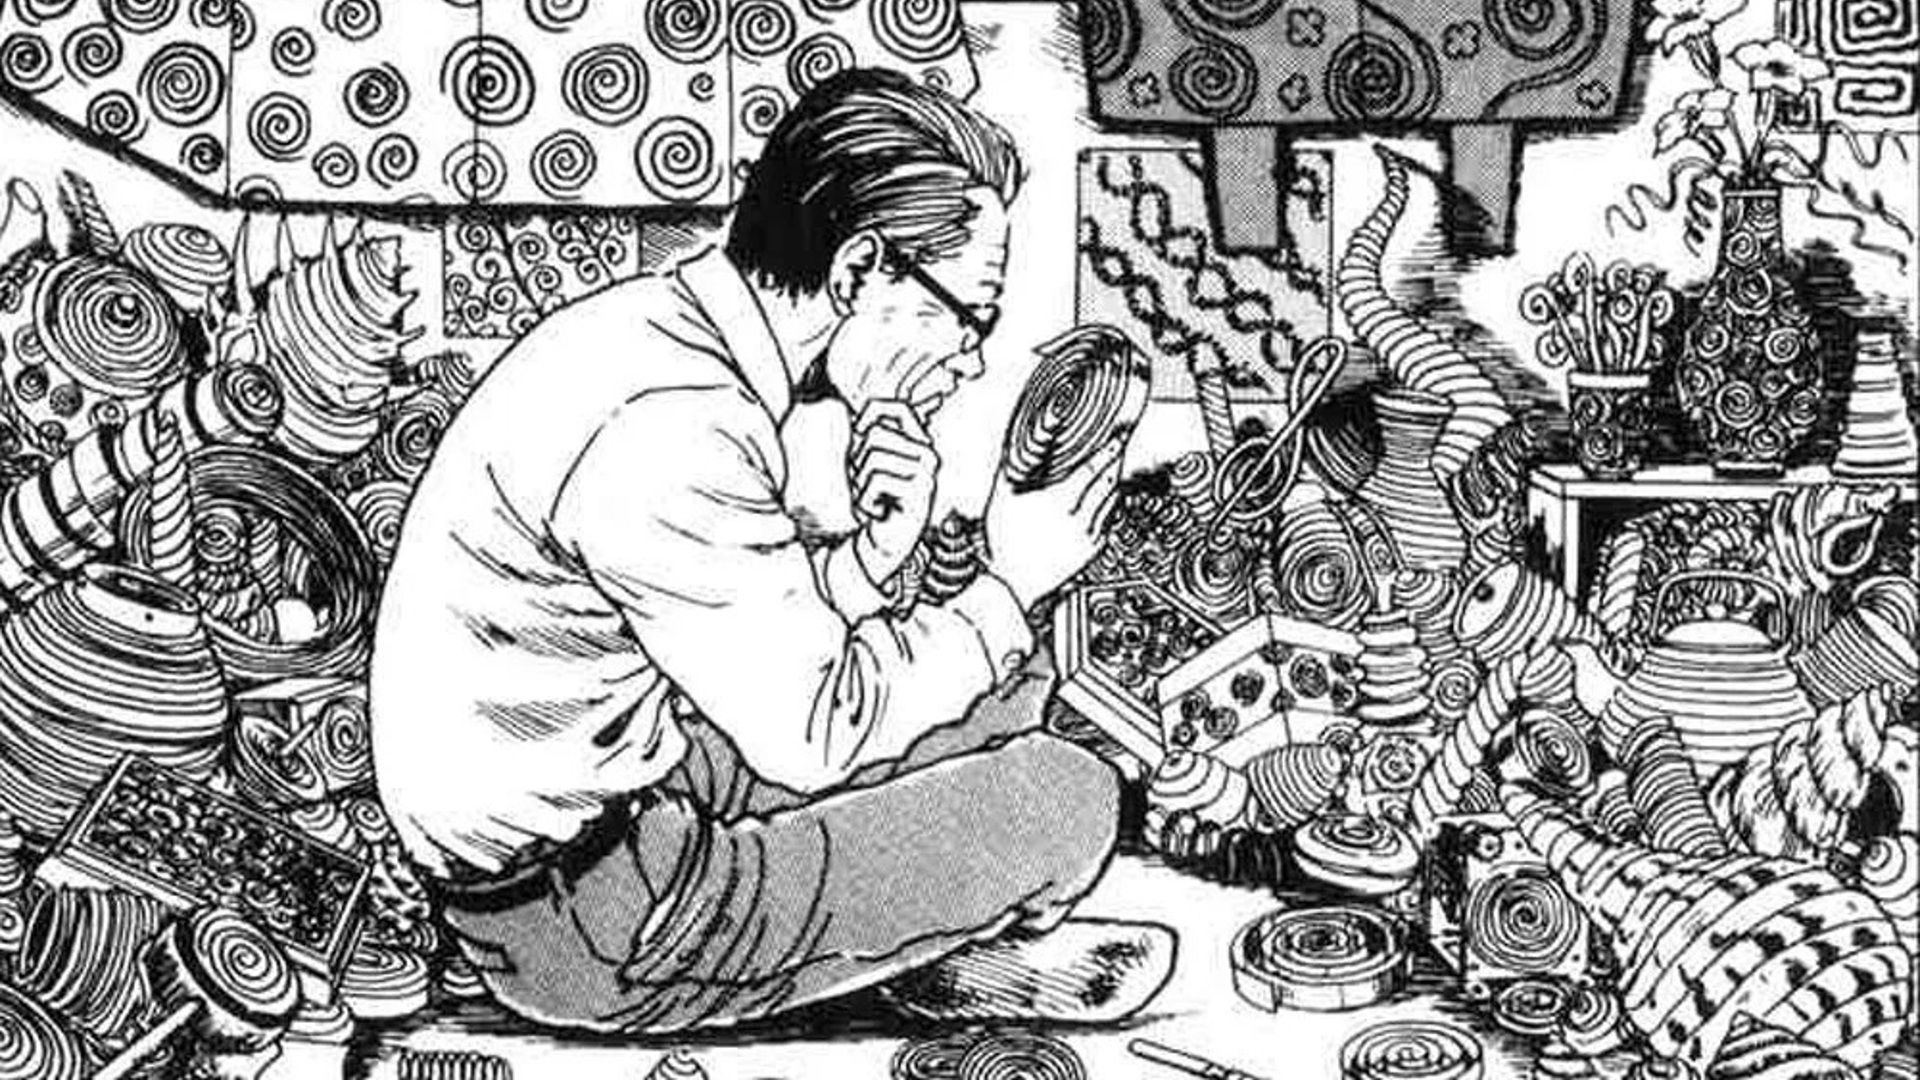 Junji Ito The Famous Artist Talks About Cats And His Work In An Unpublished Interview Anime Sweet